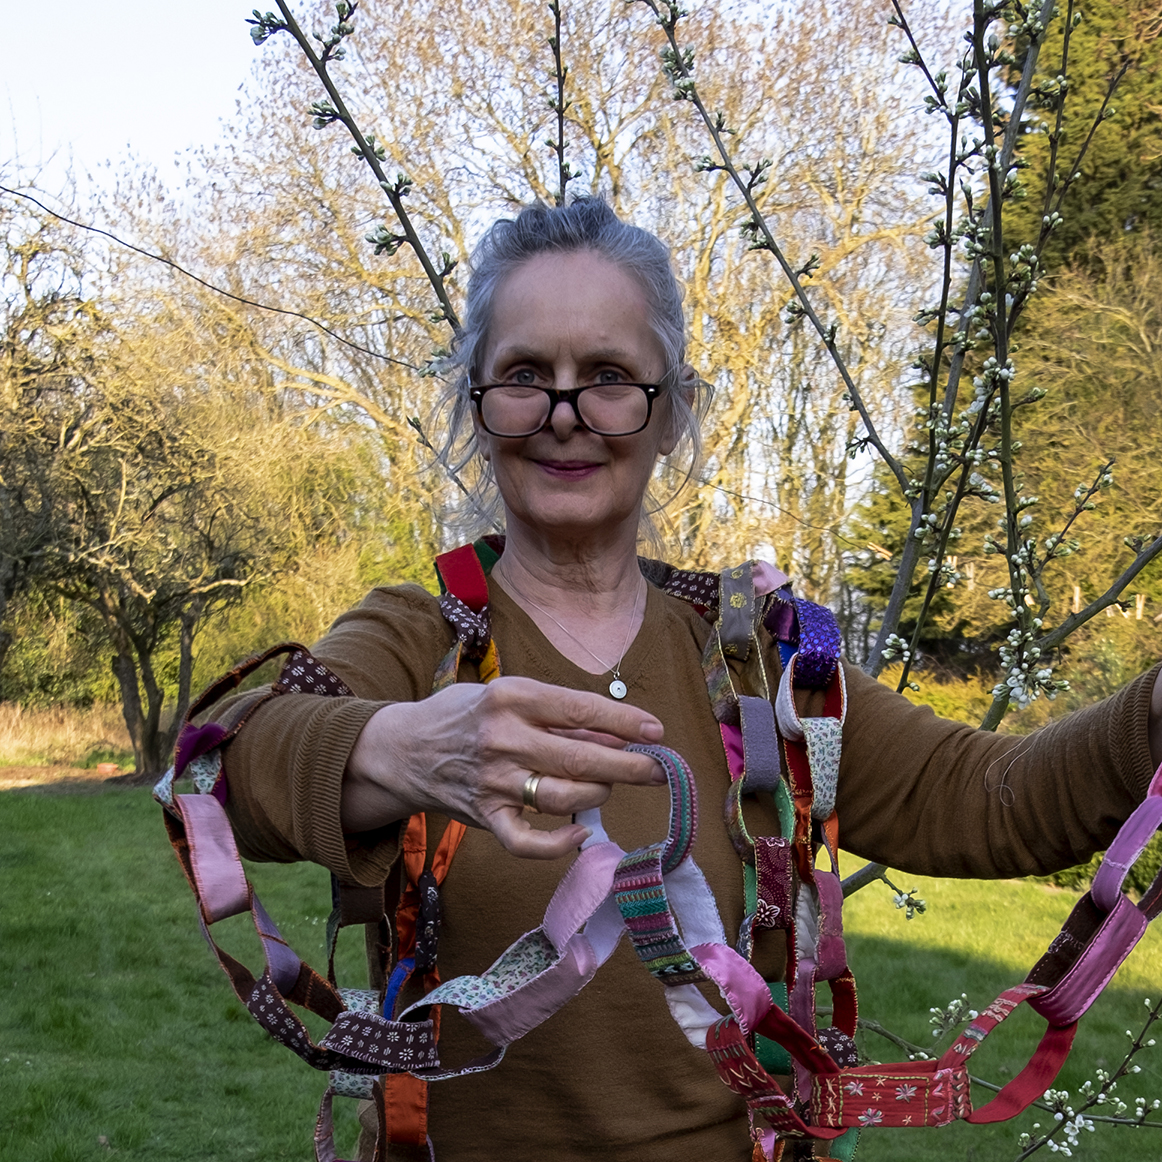 a picture of artist Jane Glynn wrapped around colourful paper chains